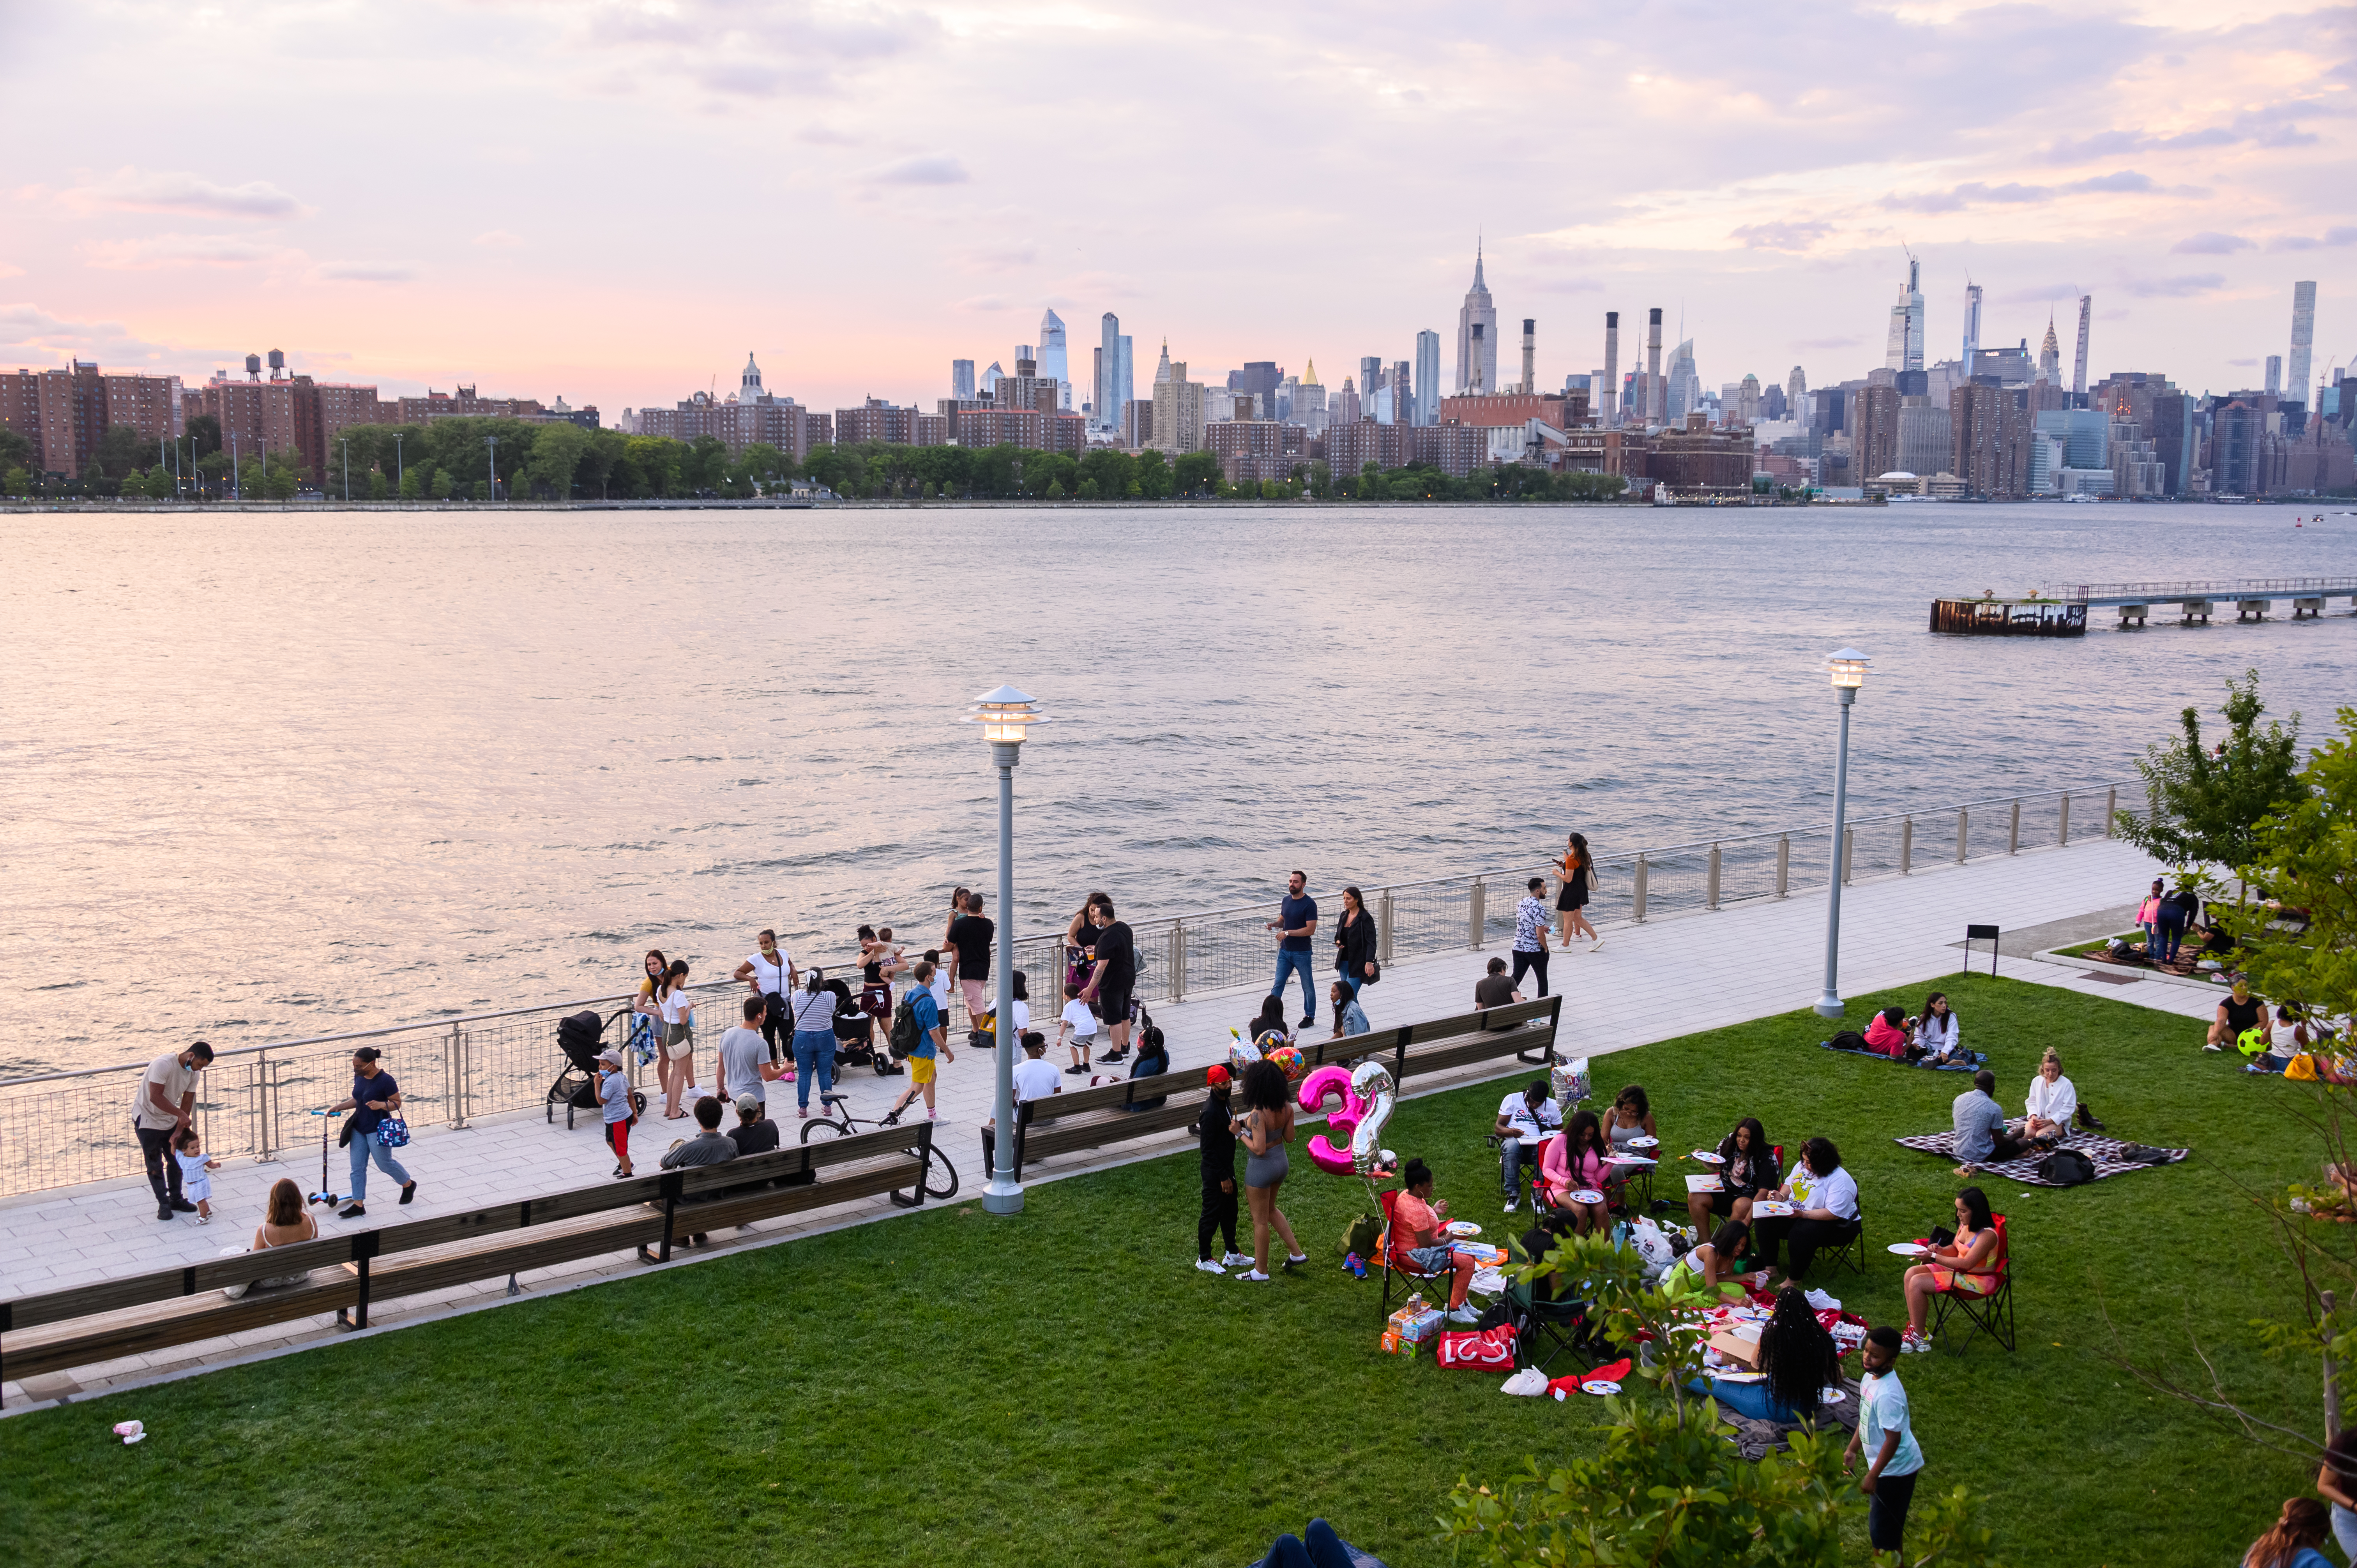 People fill Domino Park in Williamsburg  as New York City moves into Phase 3 of re-opening following restrictions imposed to curb the coronavirus pandemic on July 16, 2020.